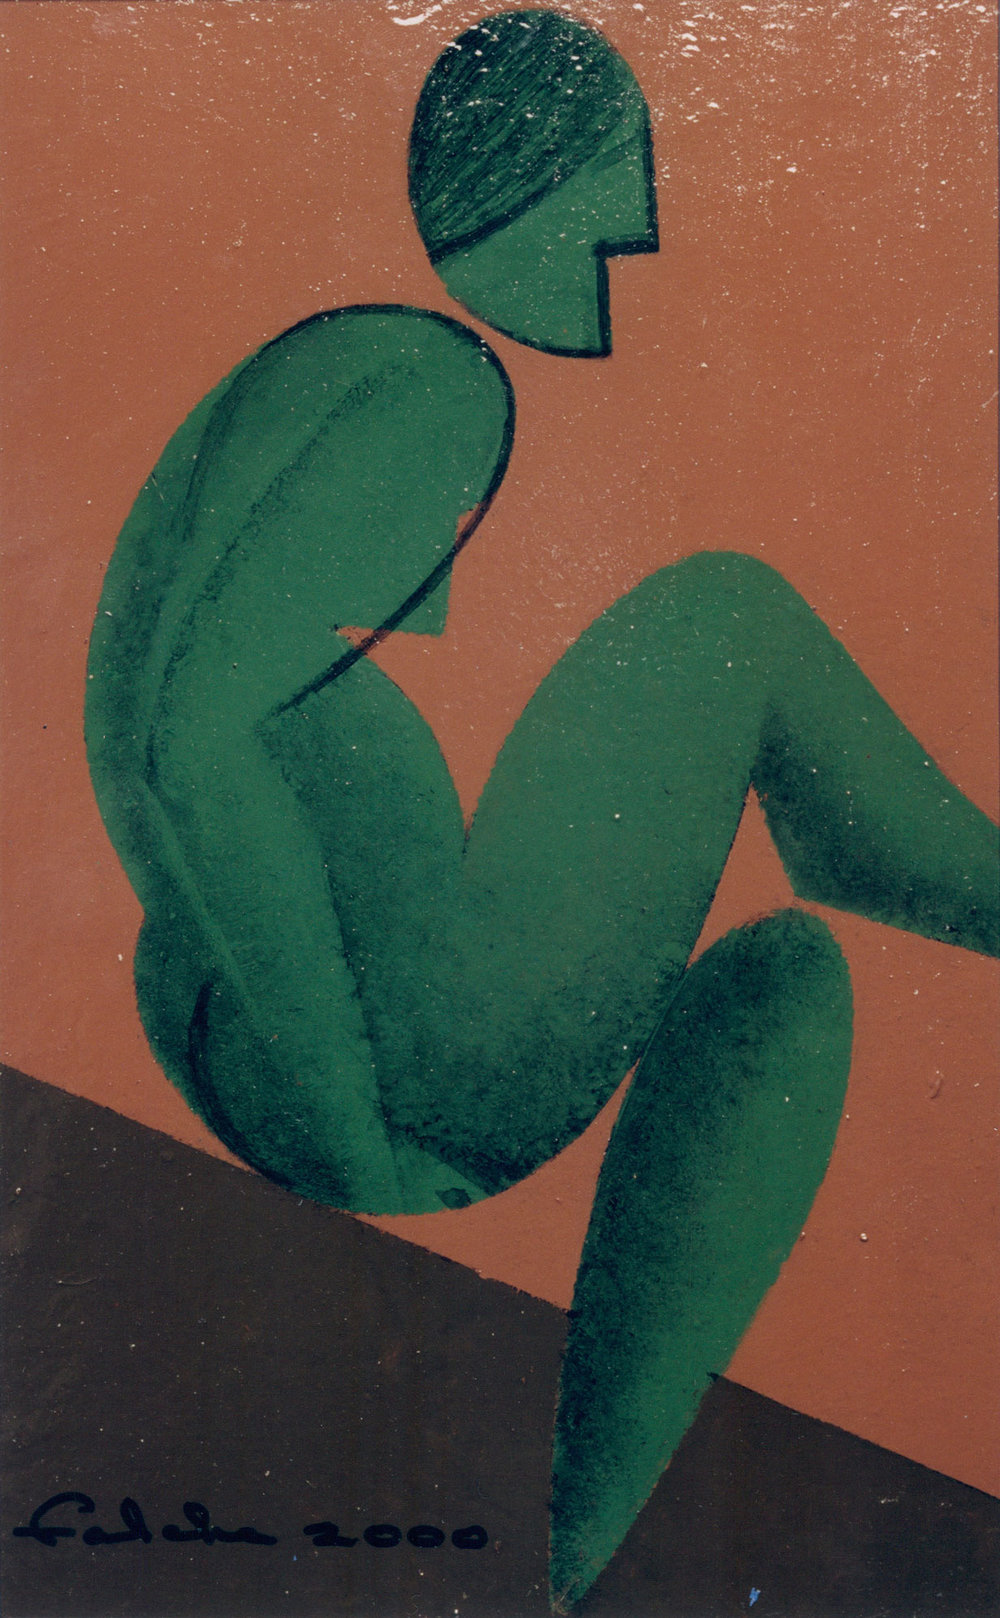 Green sitting figure